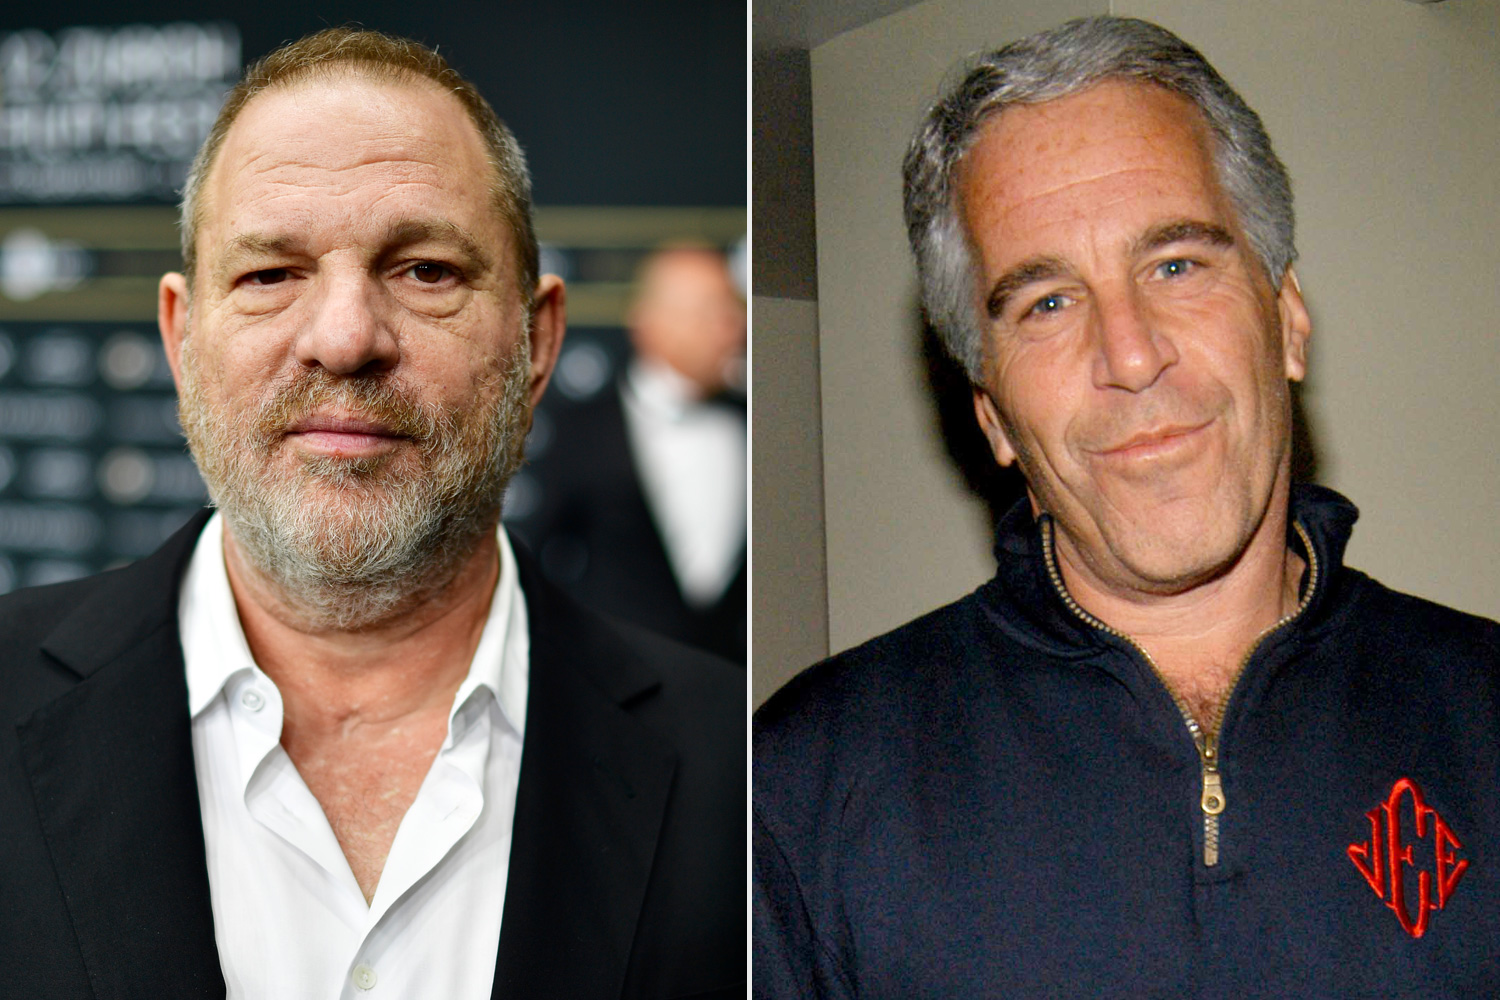 Hamptons Restaurant Owner Sets Fire to Table Where Harvey Weinstein and Jeffrey Epstein Sat